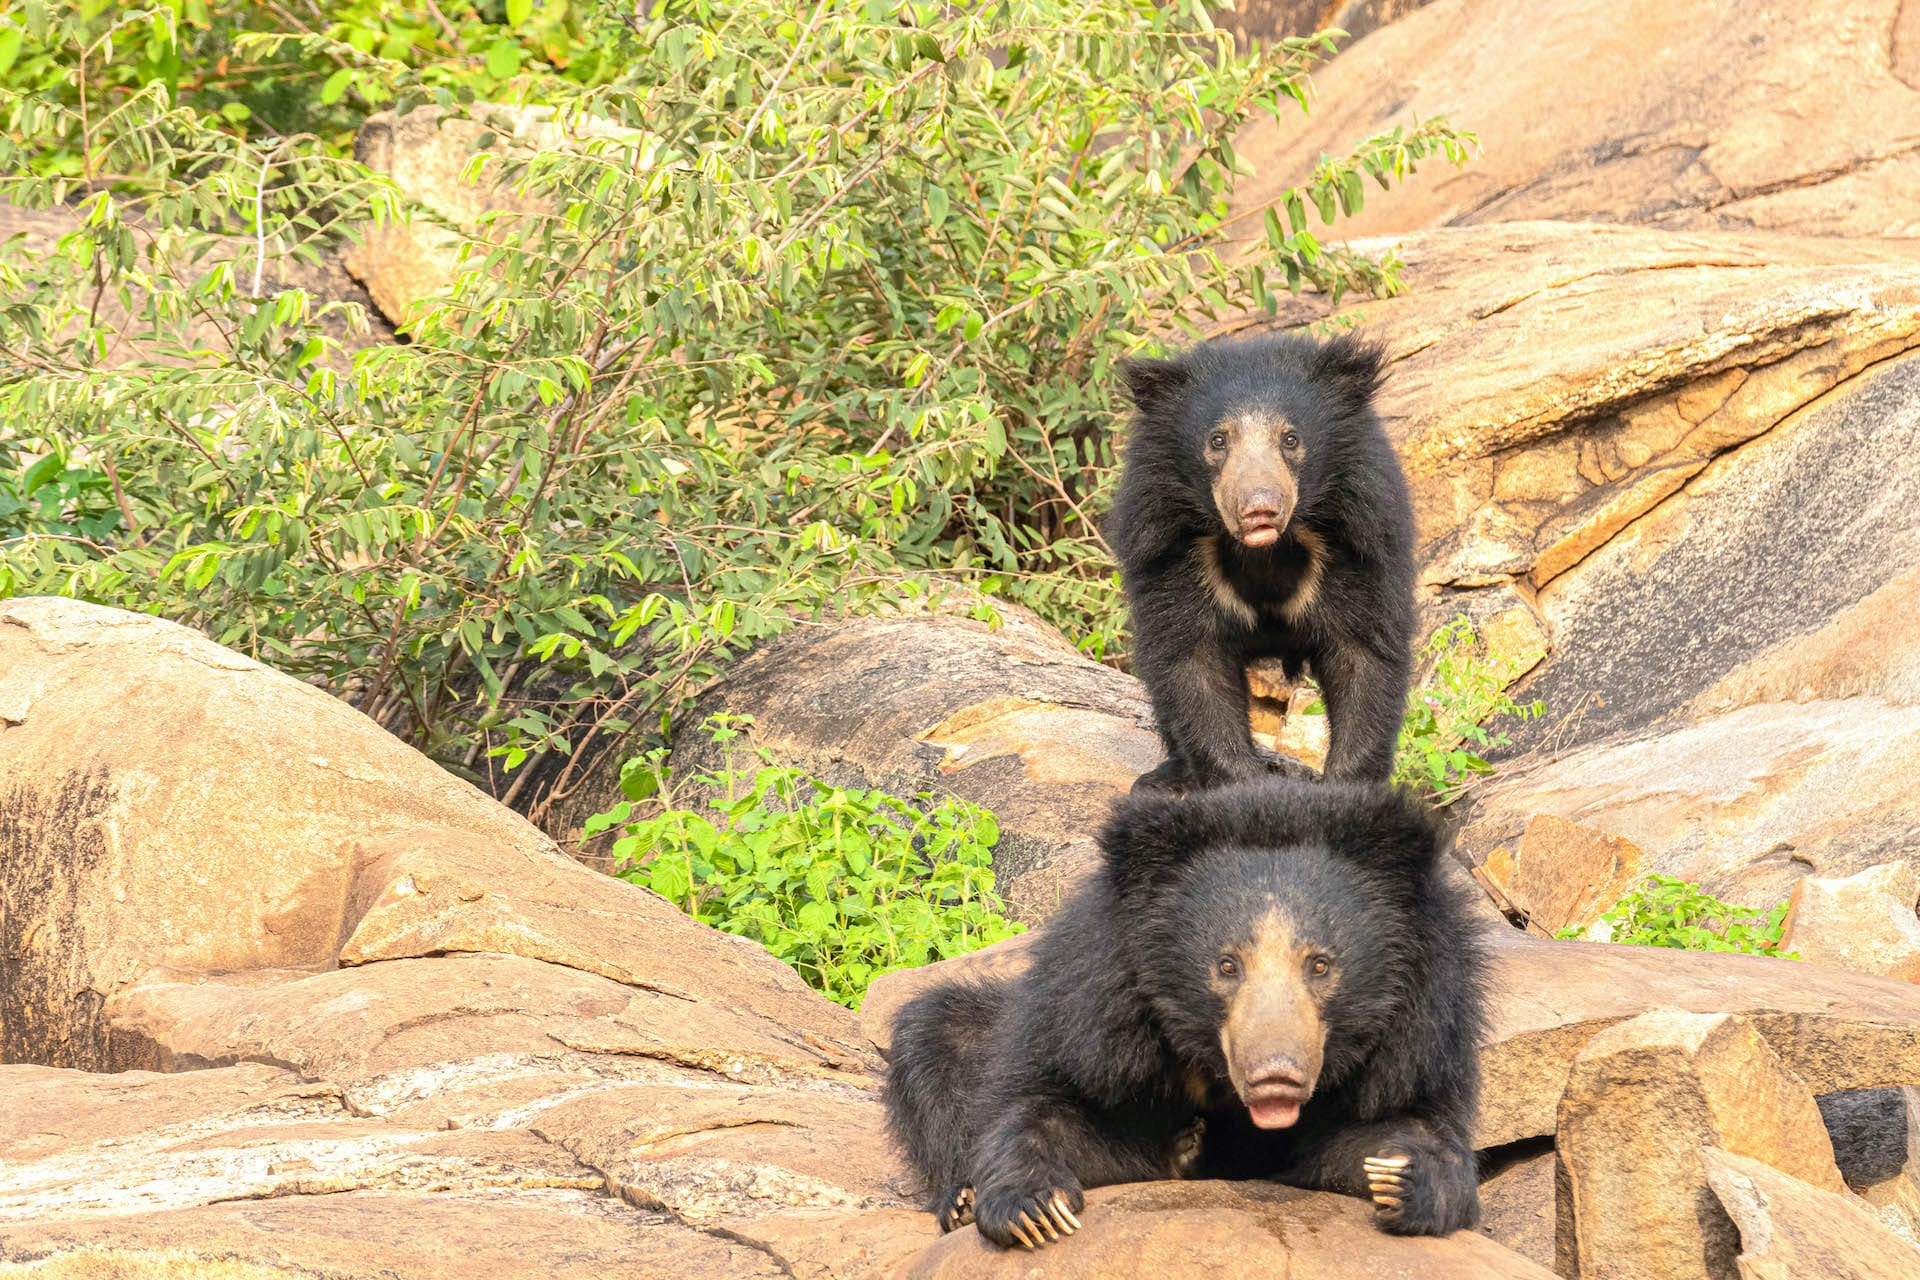 """(Top) India has four wildlife sanctuaries dedicated to the sloth bears – Daroji (pictured here) and Gudekote in Karnataka and Jessore and Ratanmahal in Gujarat. Though they are distributed from the foothills of the Himalayas to the southern tip of the Indian peninsula, the Western Ghats and the forests of central India are where there are most likely to be seen. (Above) Sloth bears carry their young on their back. The cubs stay with their mother till they are about two years old. Photos: Akshay Manwani  Cover photo: Sloth bears are the most common of the four species of bears found in India. These bears can be distinguished by their long muzzle, protruding lips, and the distinctive white """"V"""" chevron on their chests.  Cover photo: Akshay Manwani"""